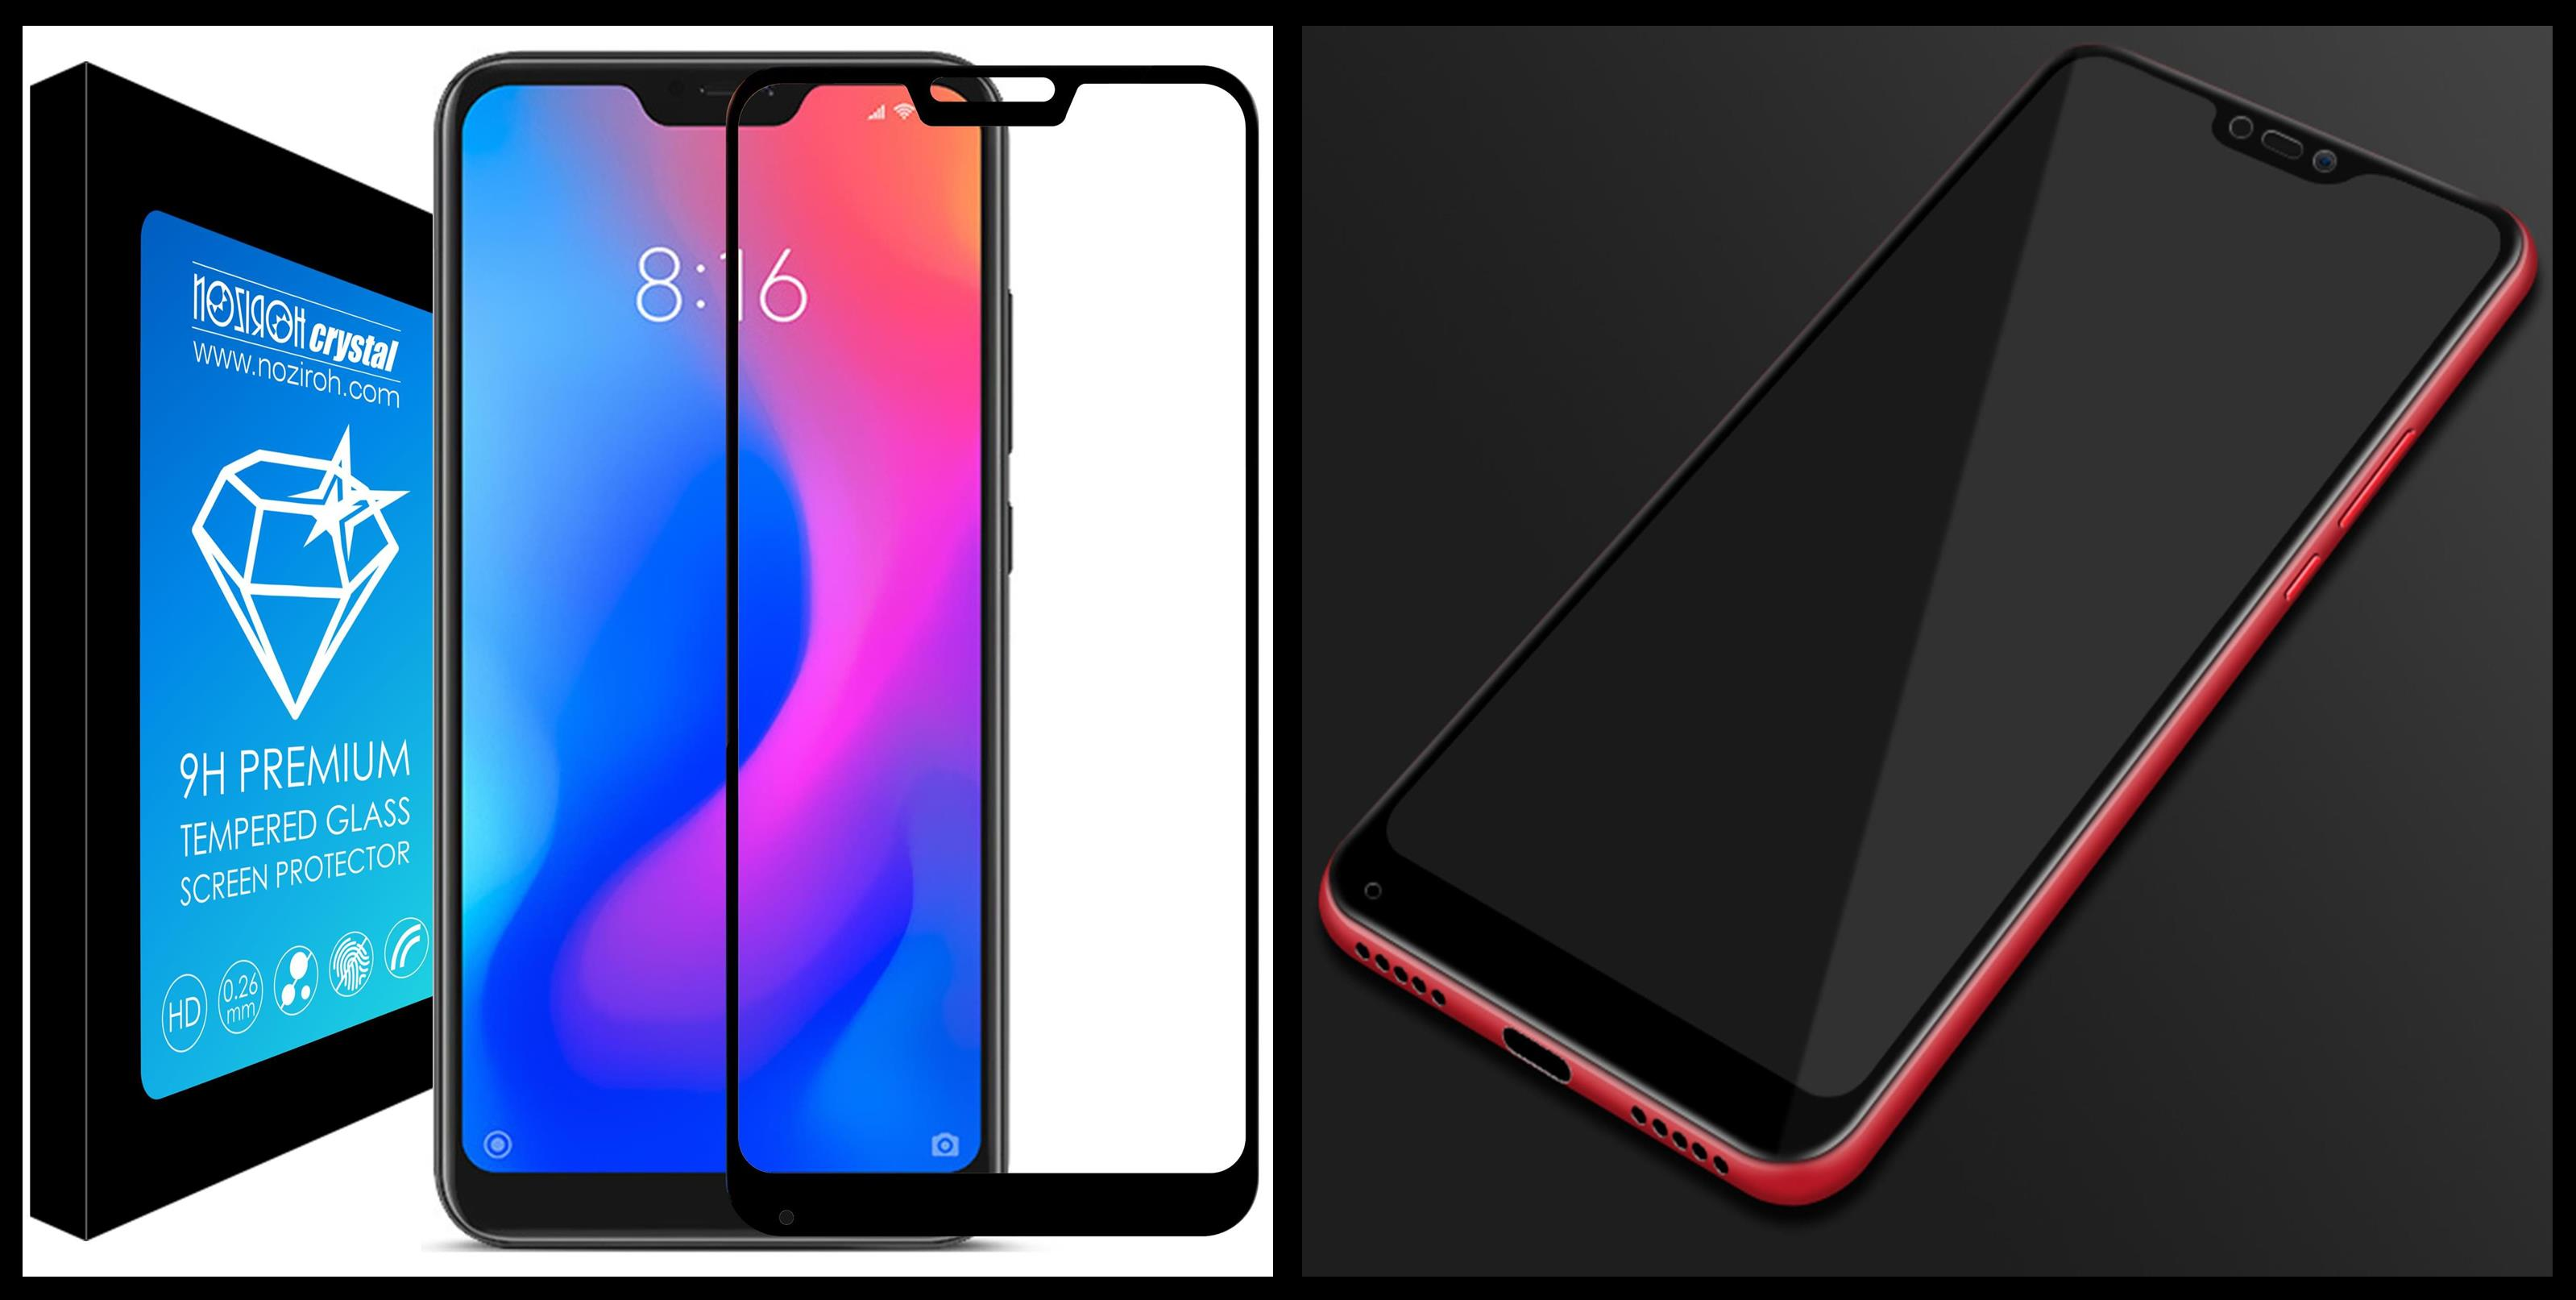 noziroh-crystal-xiaomi-mi-a2-lite-redmi-6-pro-tempered-glass-9h-3d-shockproof-scratchproof-black